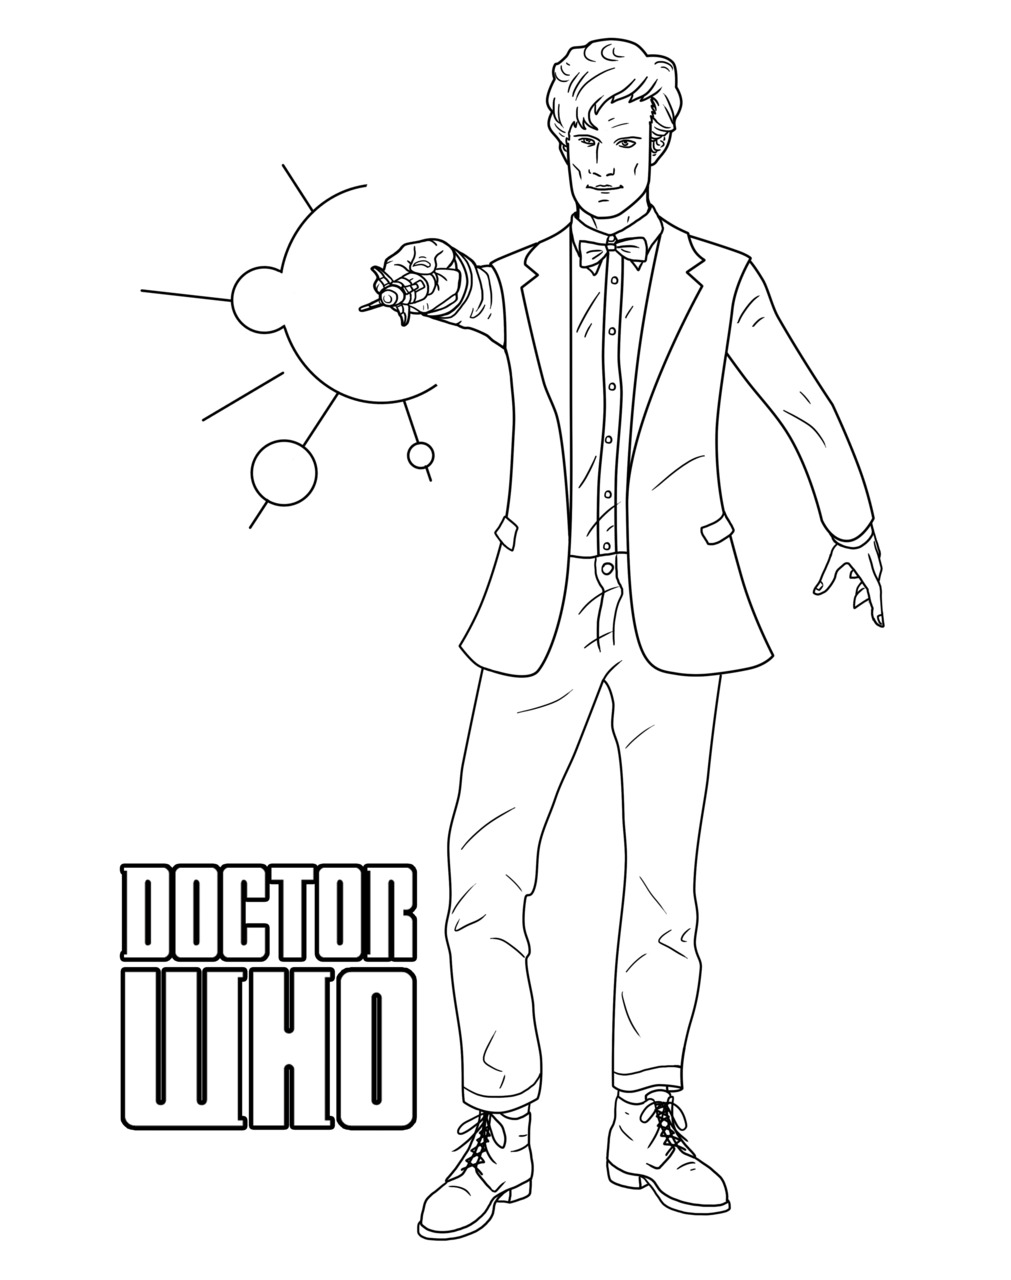 Doctor Who Coloring Pages Best Coloring Pages For Kids